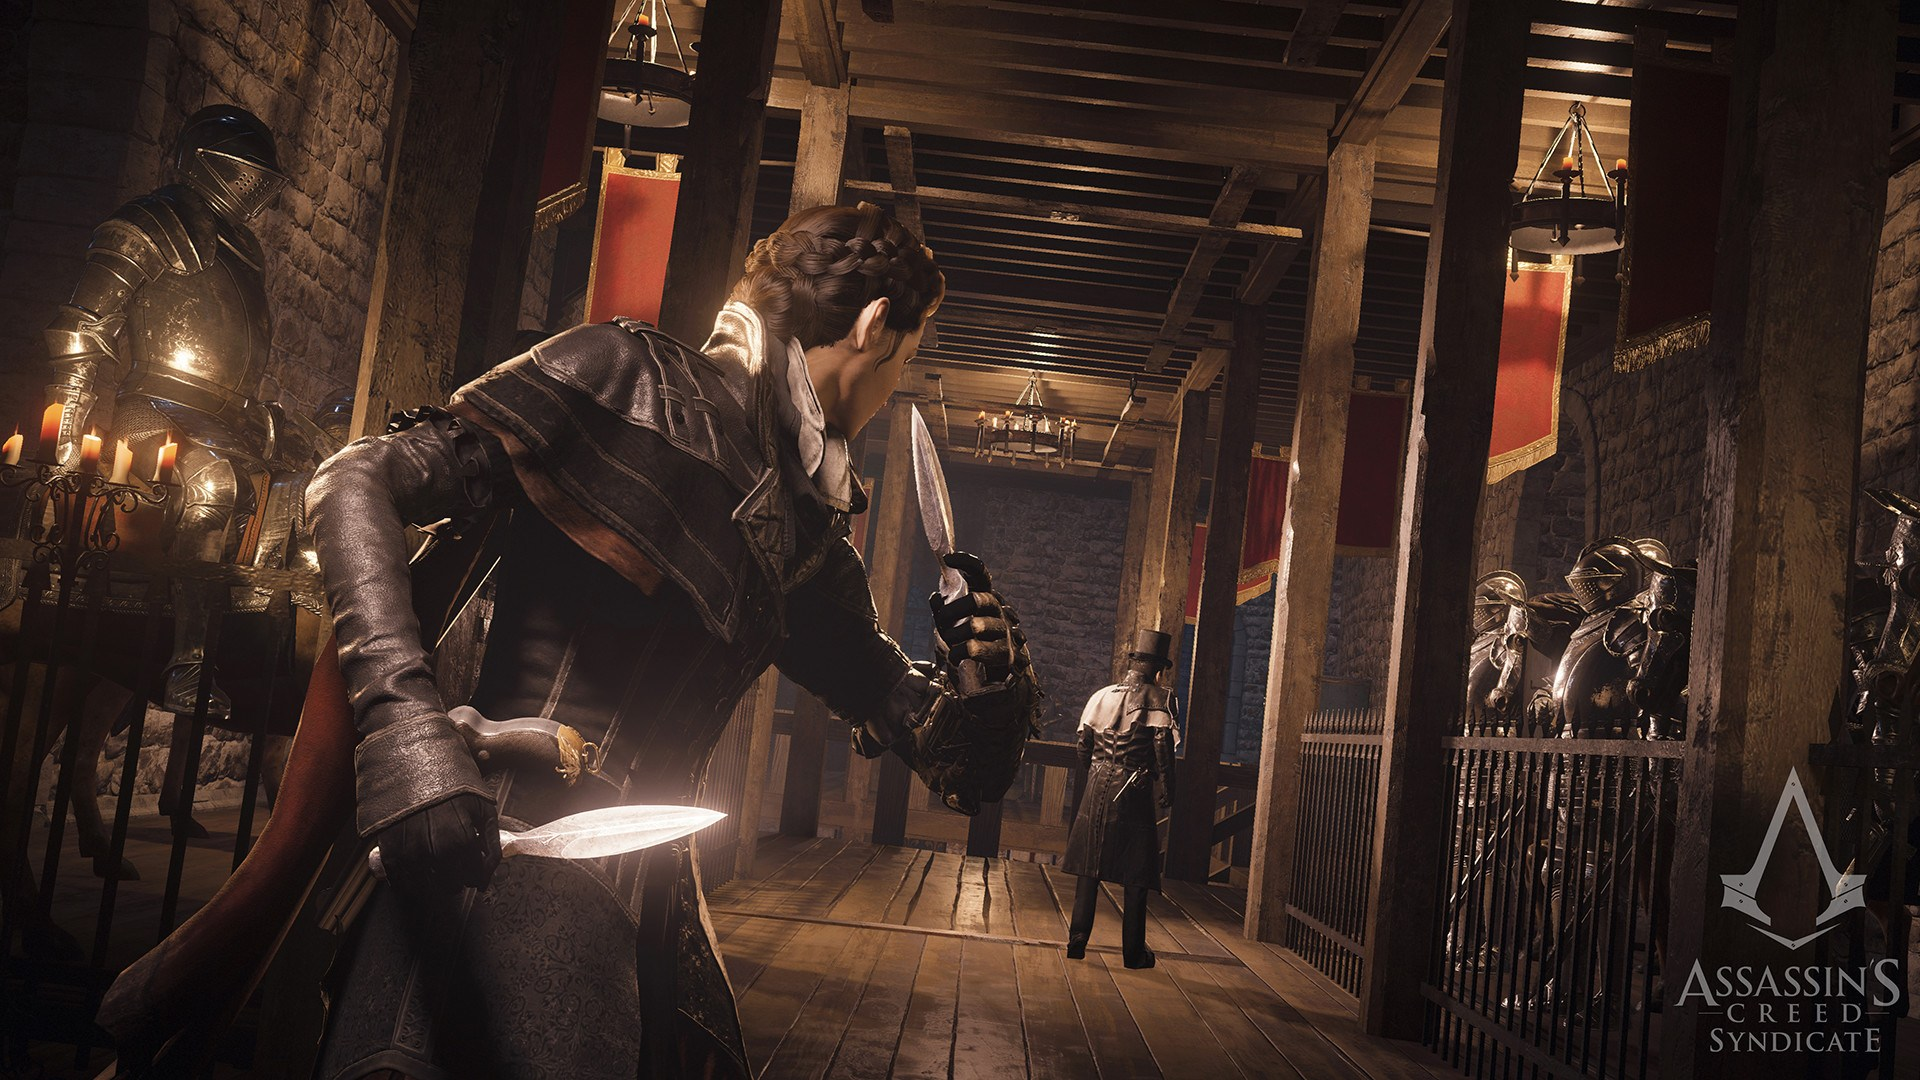 Animus Wallpaper 2018 63 Images Assassins Creed Syndicate Evie